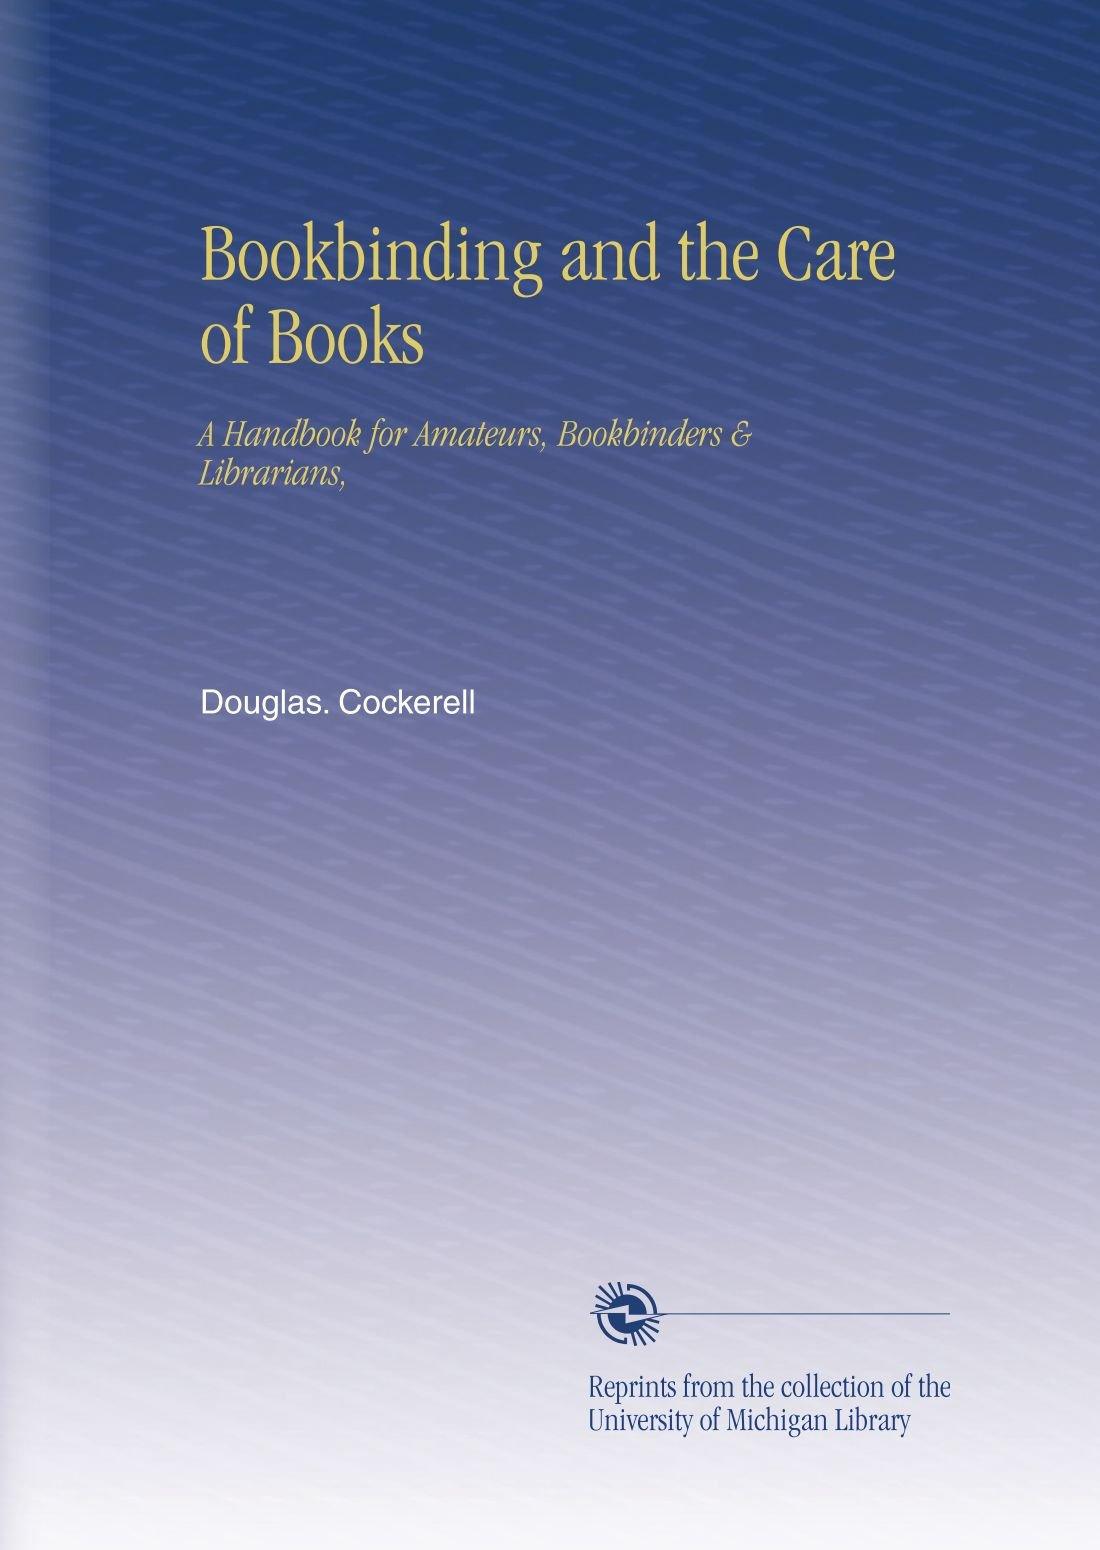 Bookbinding and the Care of Books: A Handbook for Amateurs, Bookbinders & Librarians,